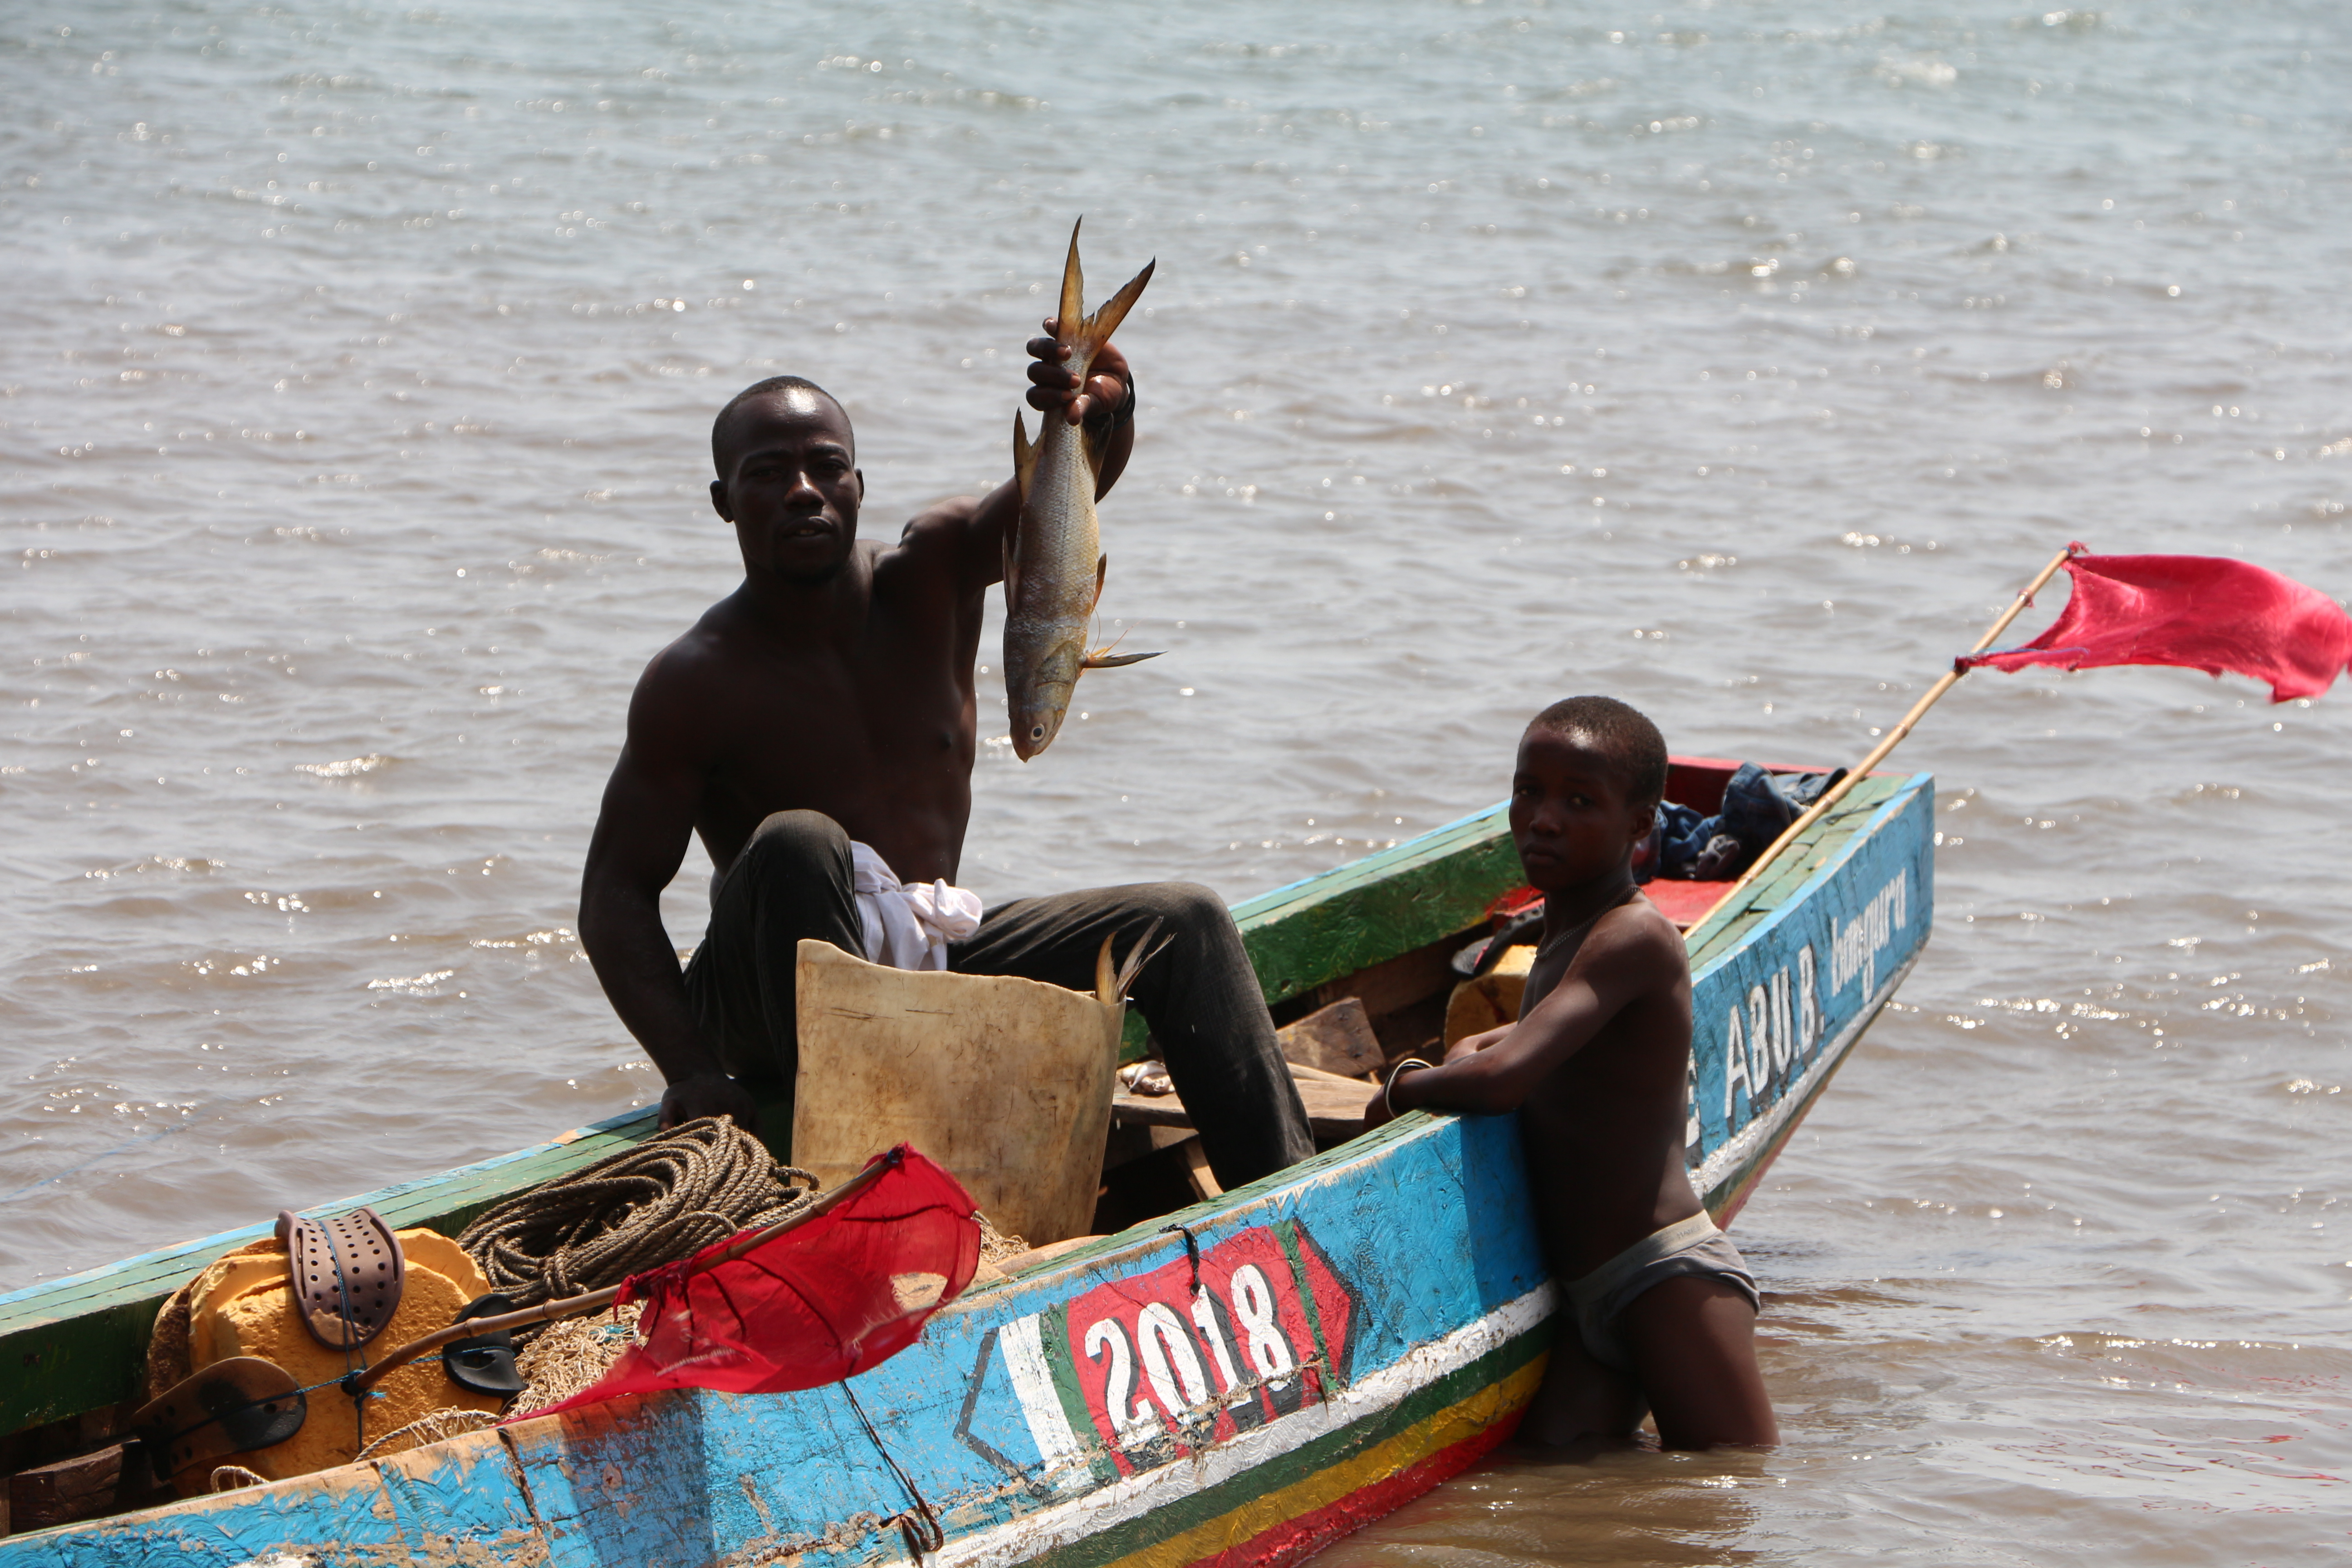 A man and youth on a blue boat, sitting in the sea. The man is holding up a fresh fish.